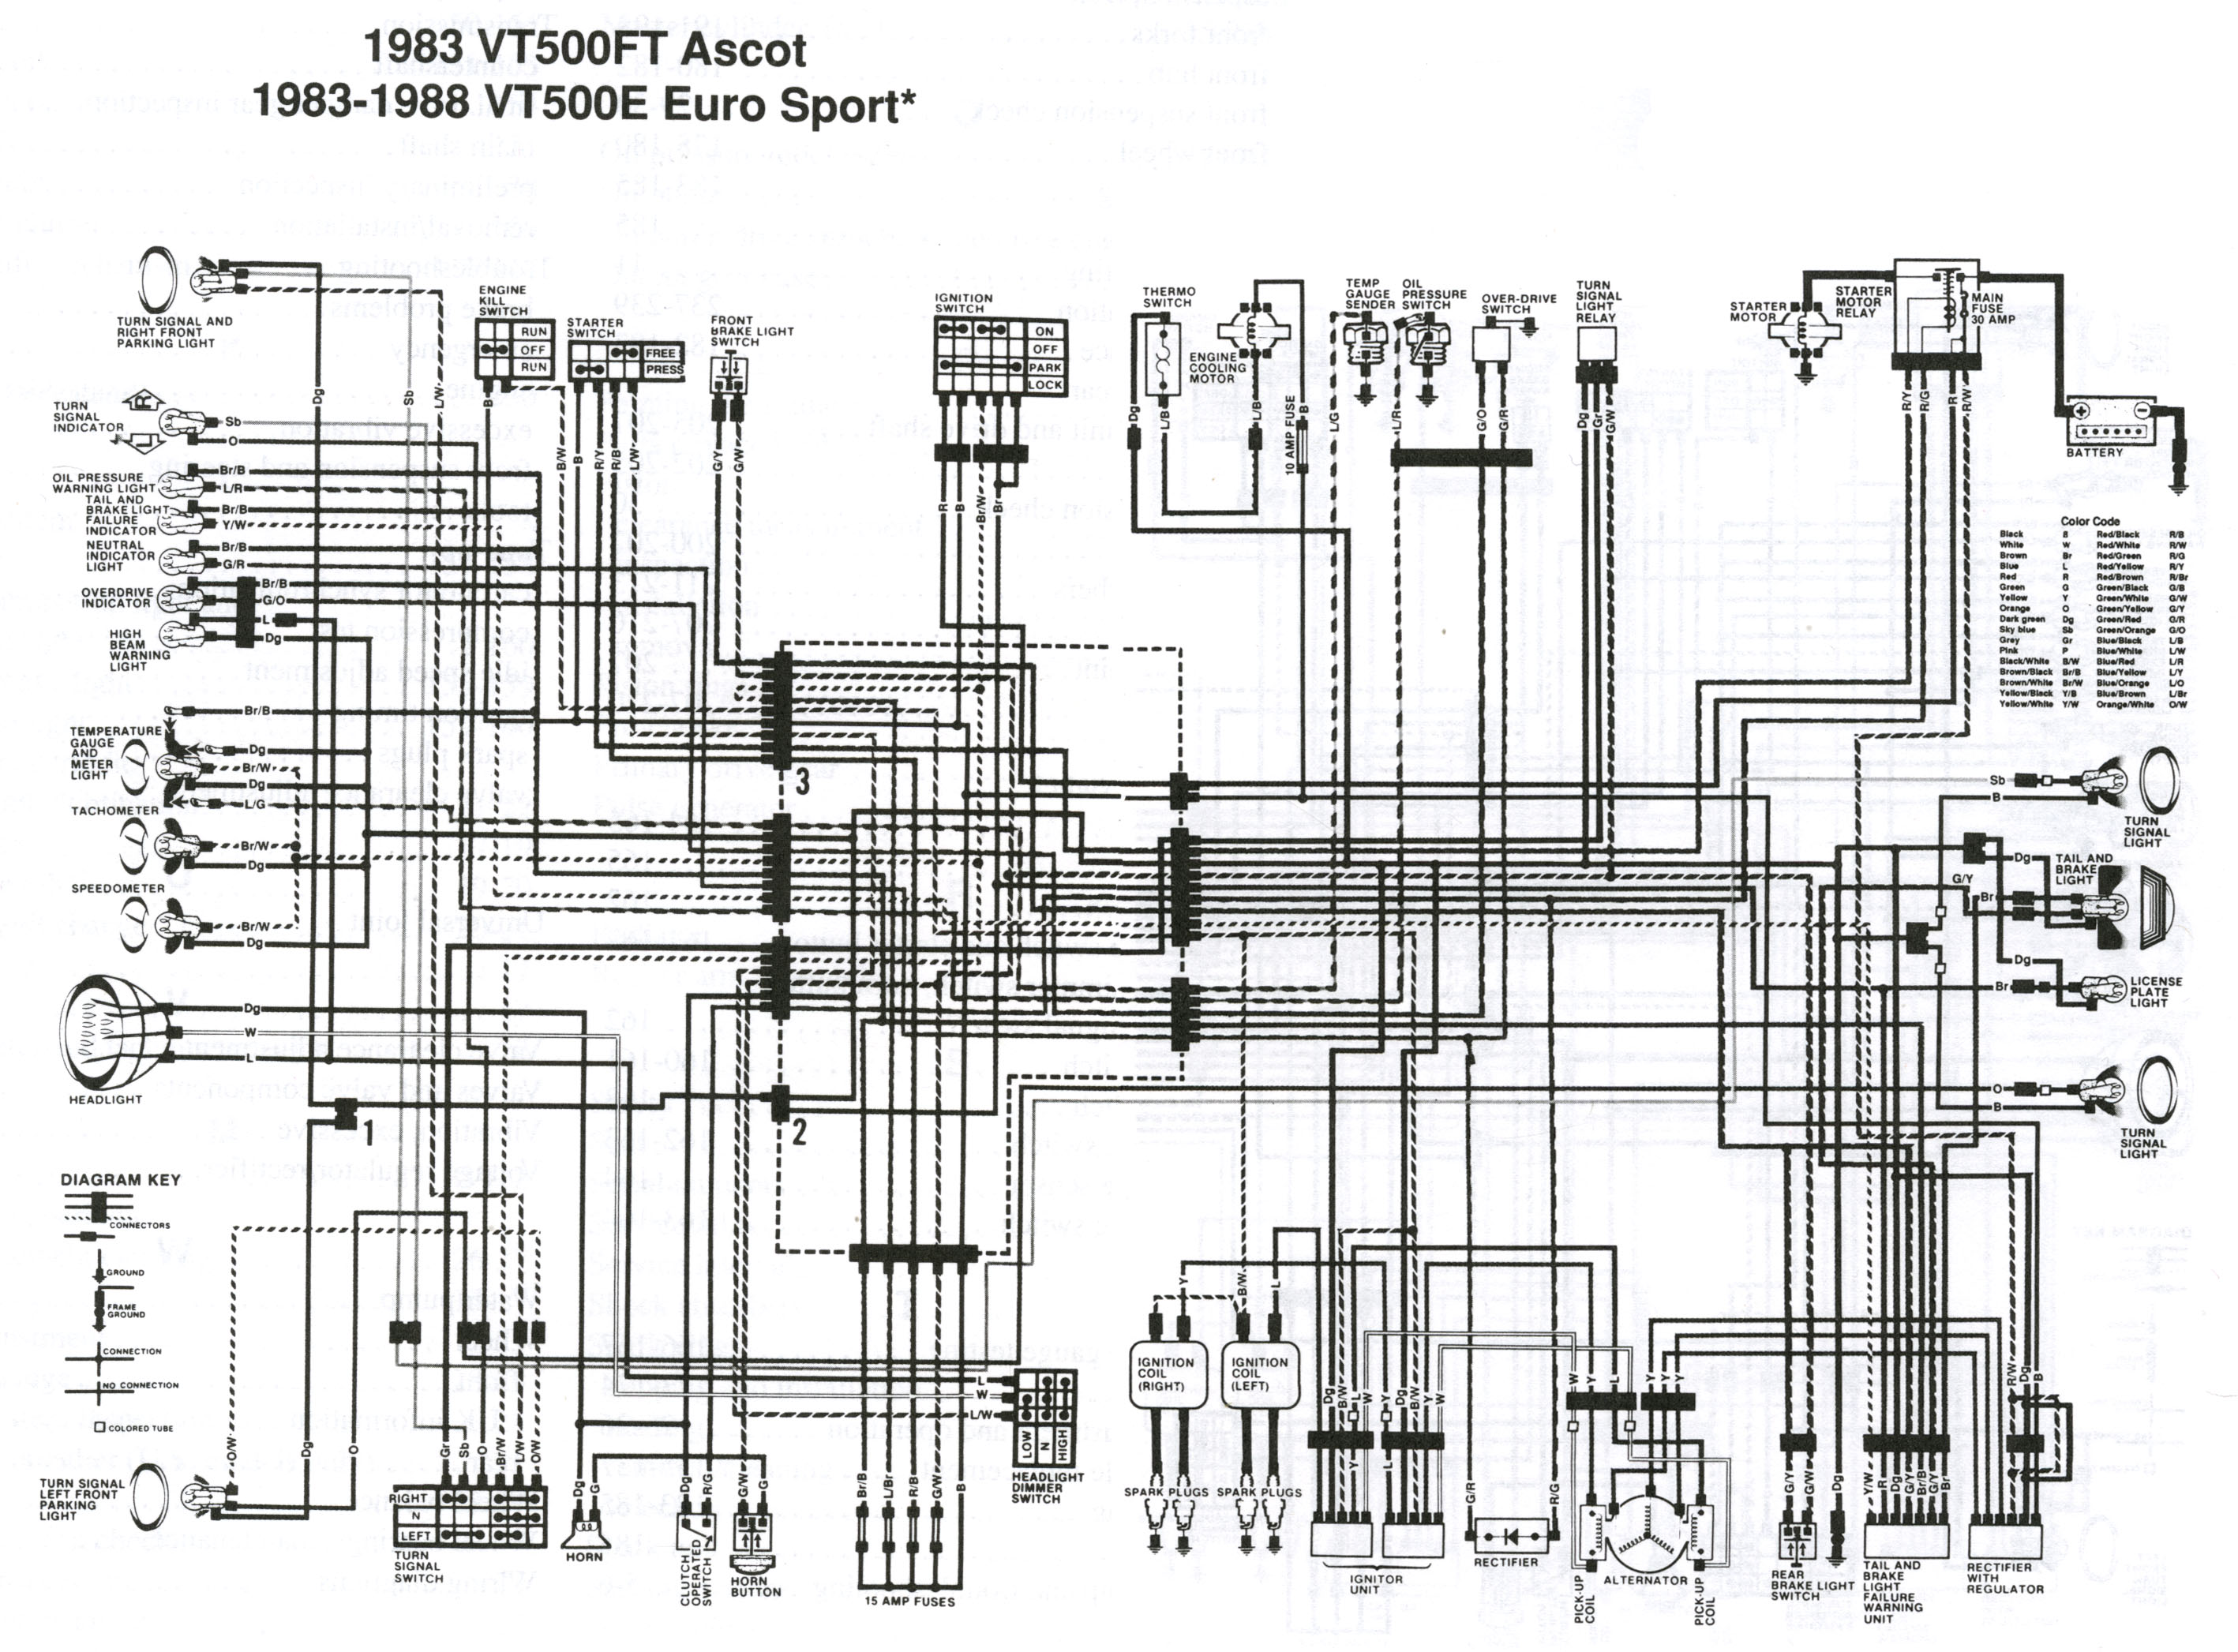 Vt500c Wiring Diagram Schematics Honda Xr80 Vt500 Electrical Diagrams Ladder Ascot